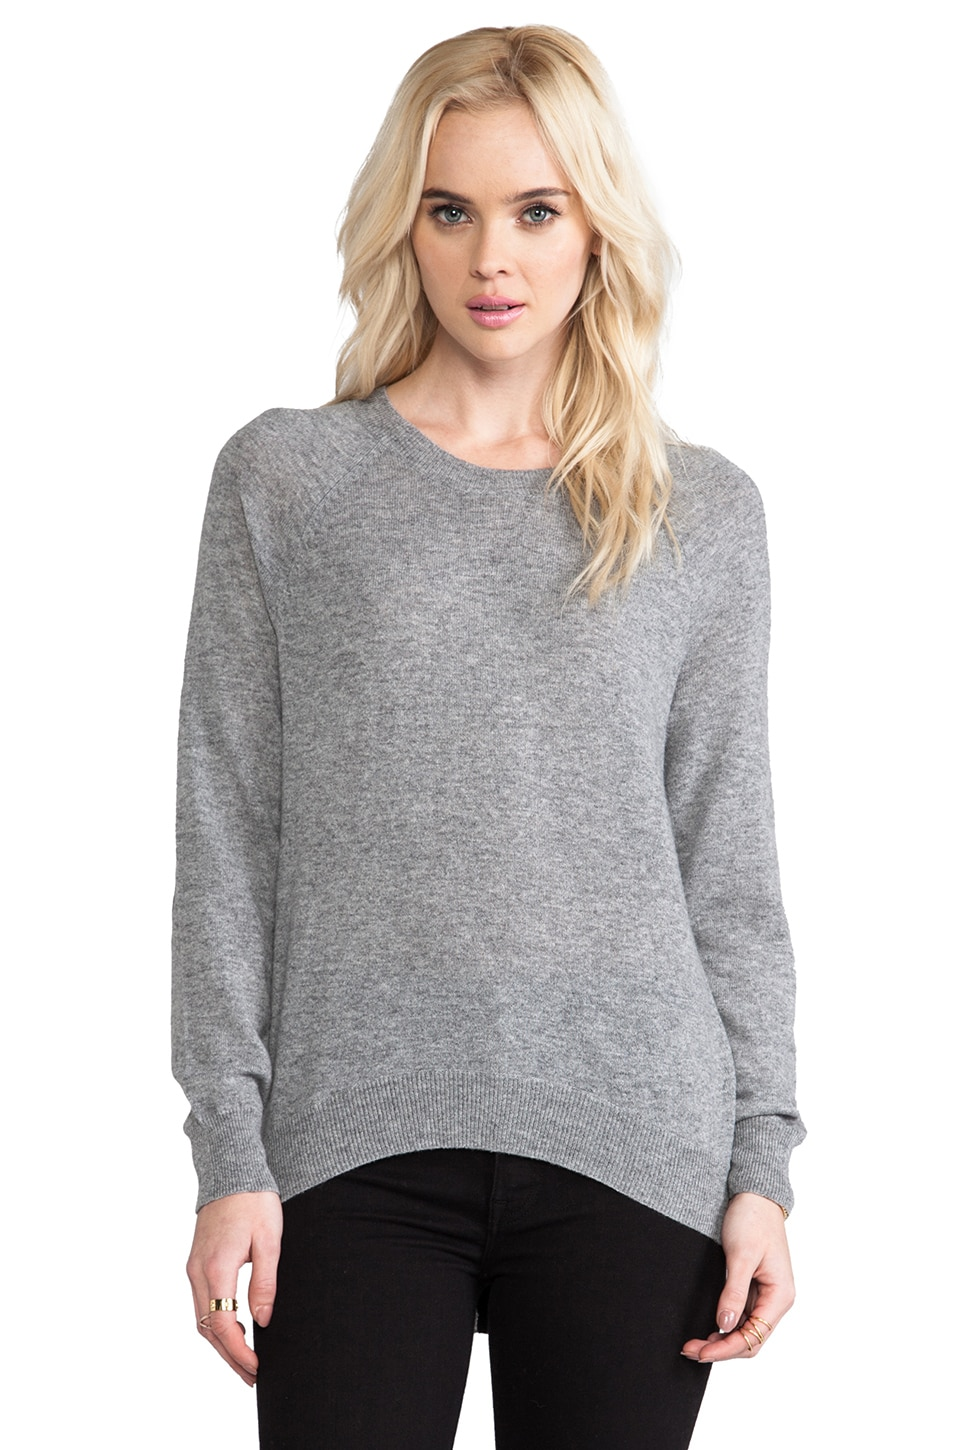 Autumn Cashmere Zip Back Raglan in Cement/Black